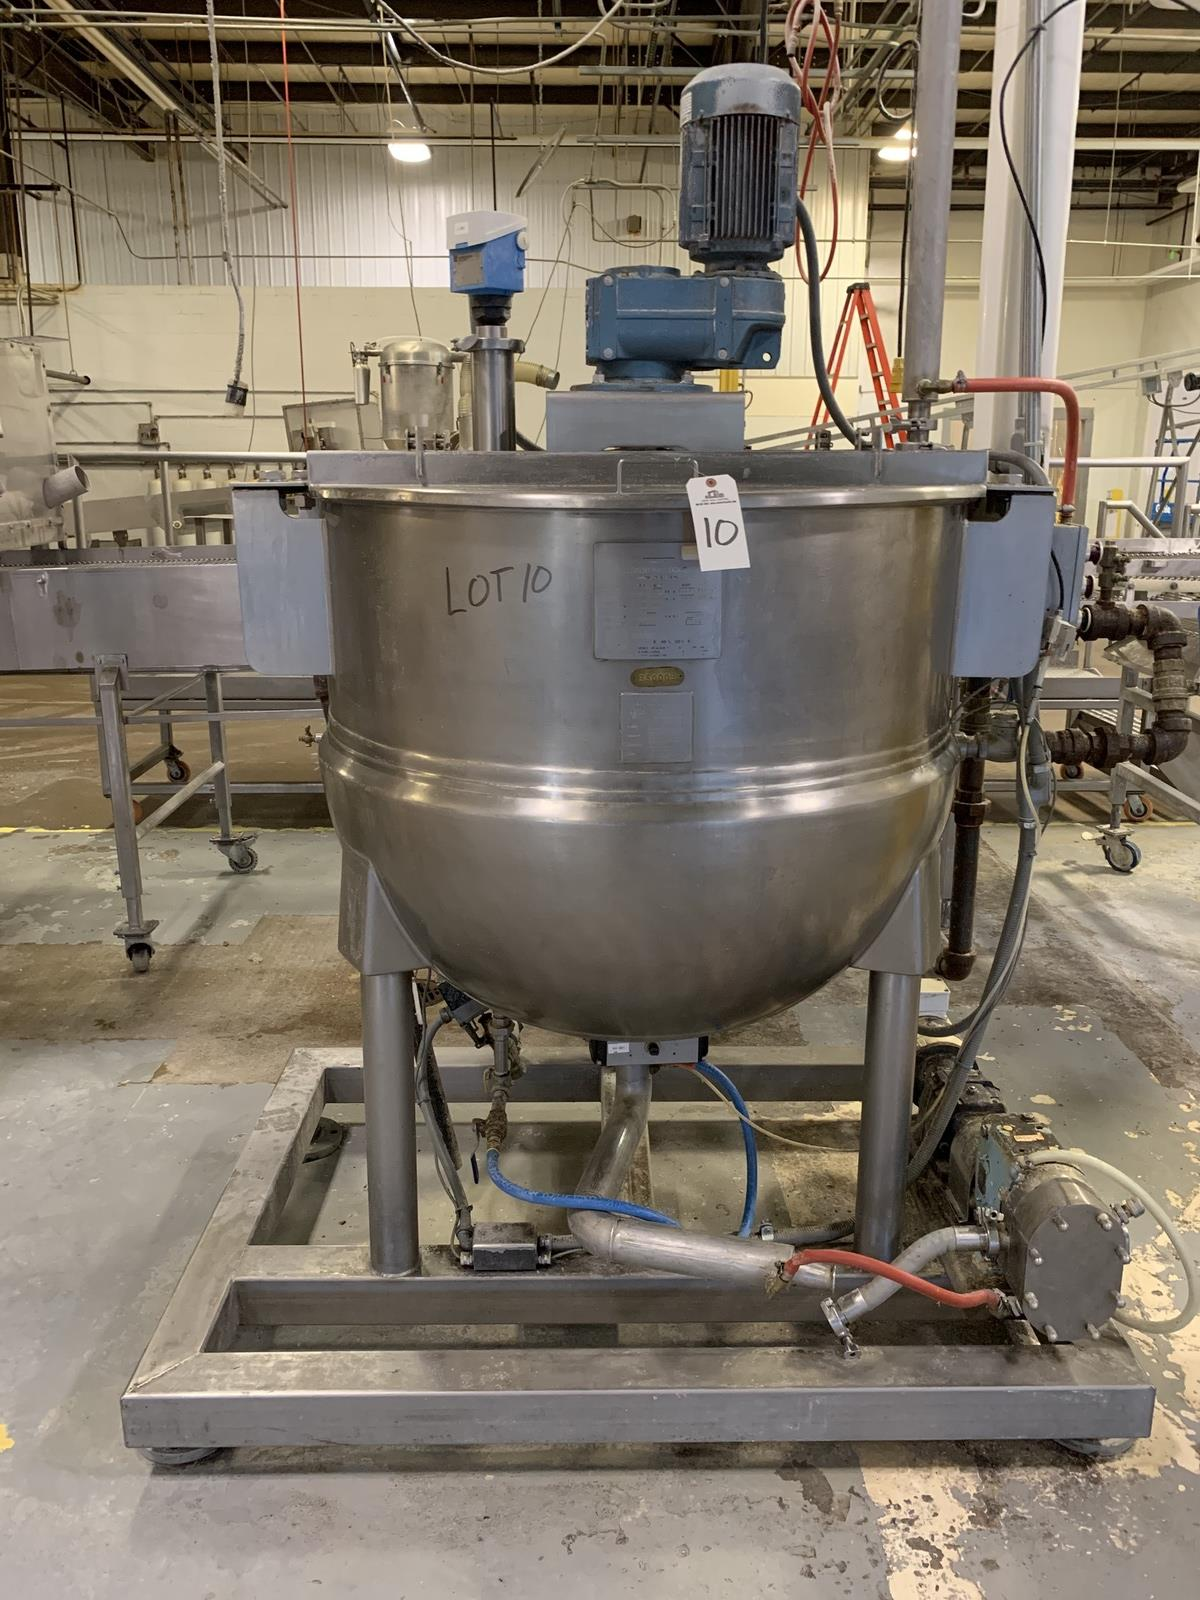 Lot 10 - 2003 Hamilton 150 Gallon Sweep Scrape Agitated Kettle, 125 PSI Jacket with Onboard   Rig Fee: 400